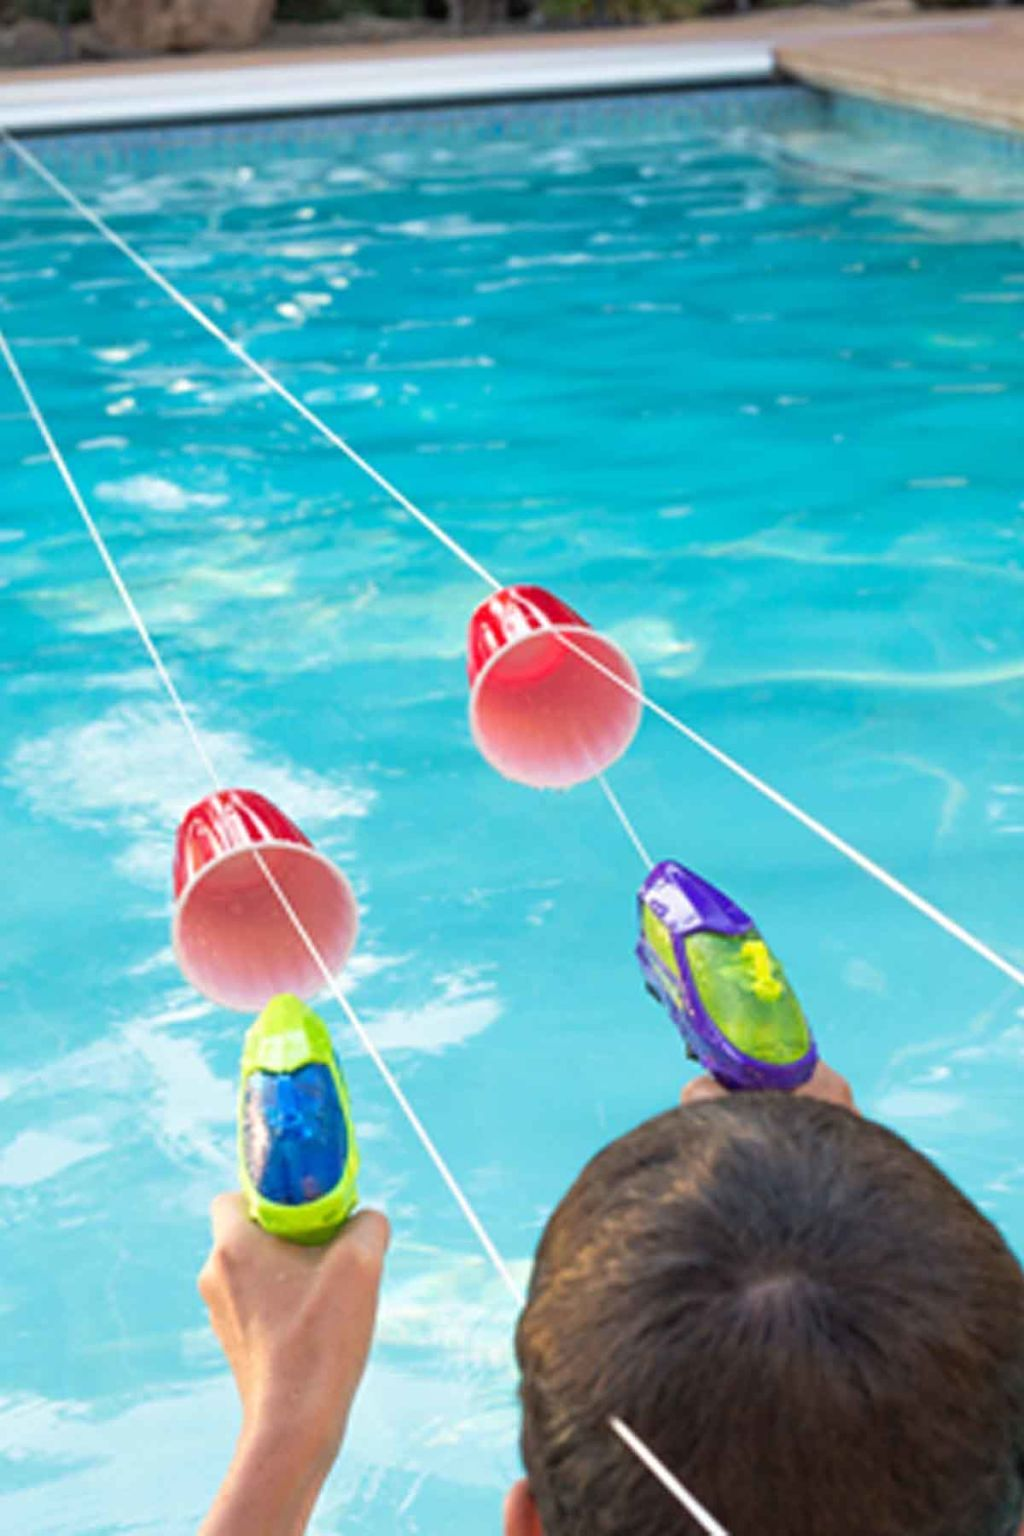 POOL PARTY GAMES (extreme kids edition) with The Norris